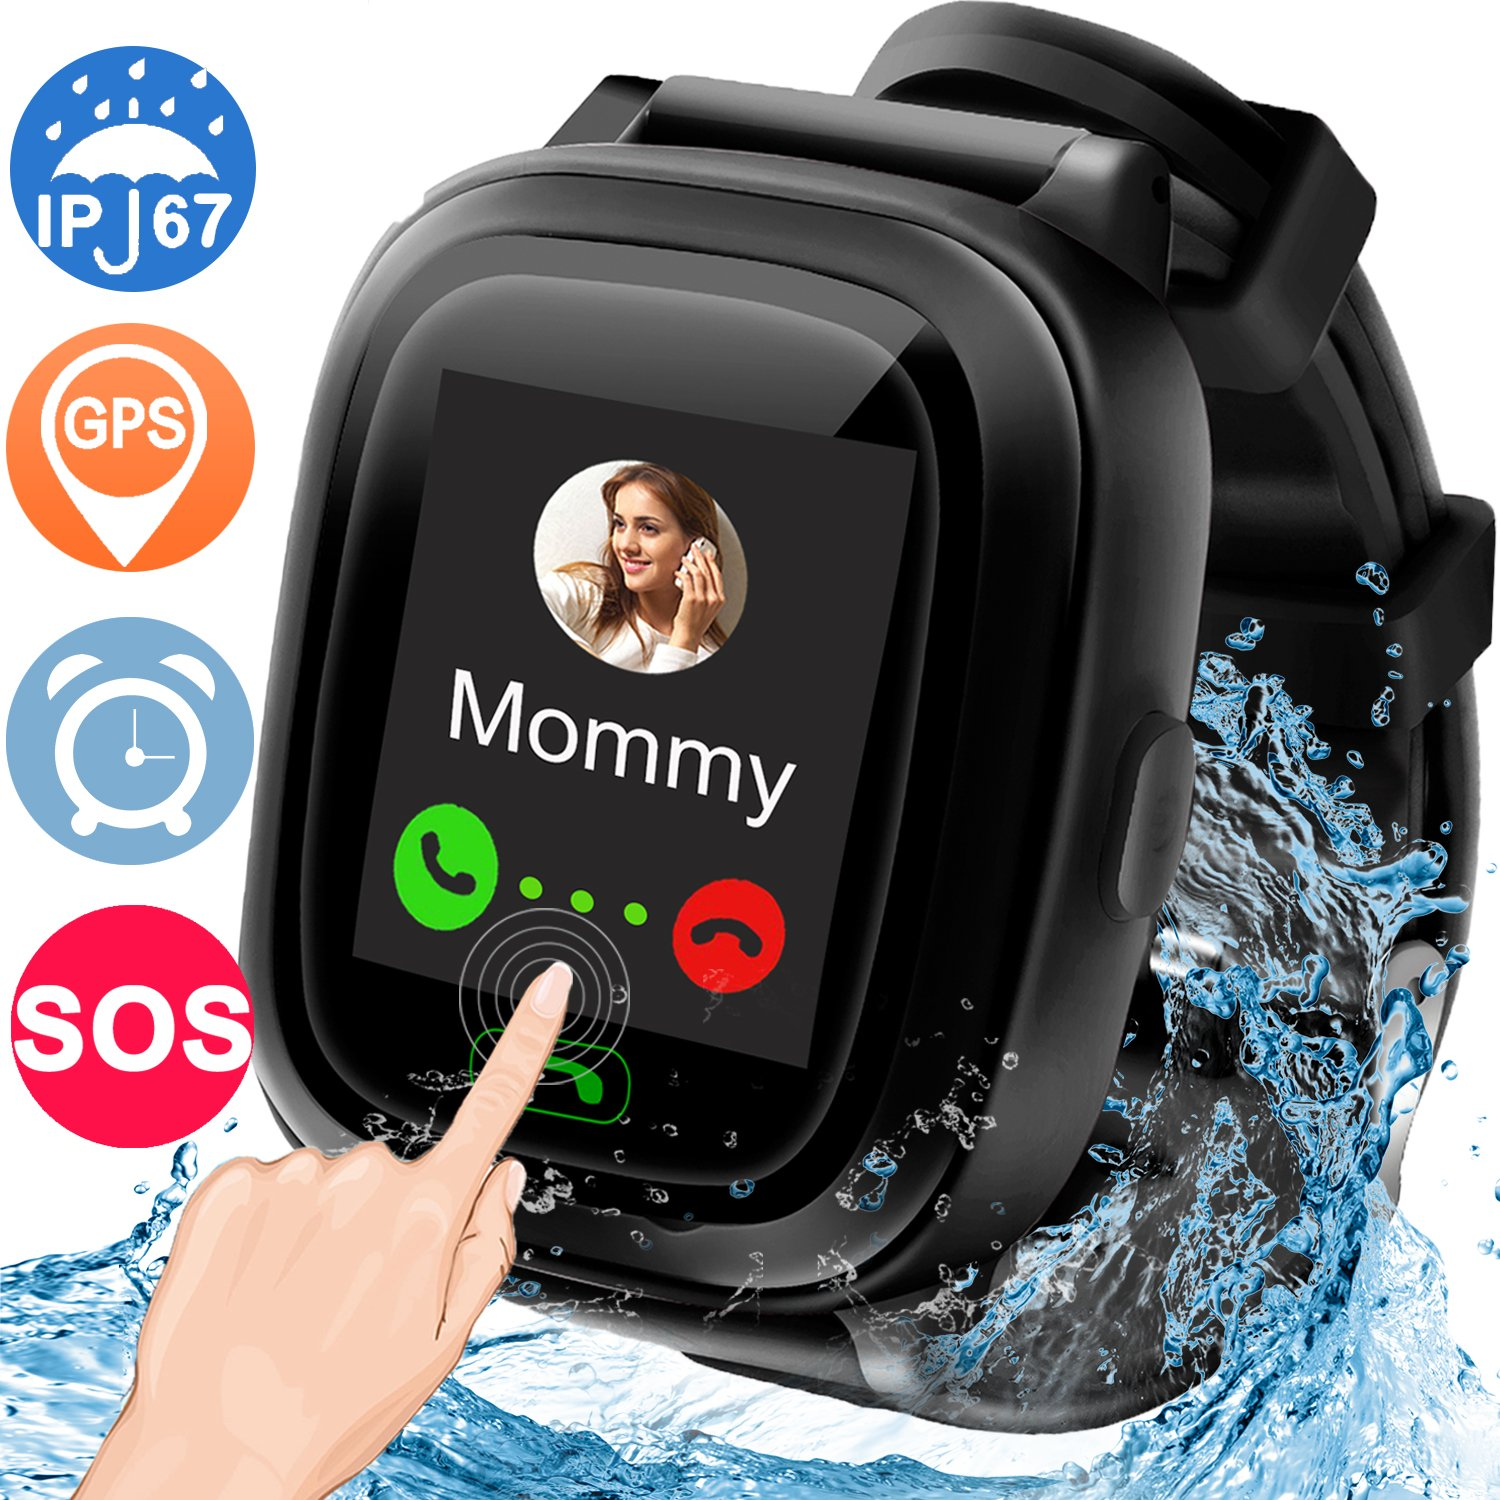 GBD 1.22'' Waterproof IP67 GPS Tracker Smart Watch Phone for Kids Boys Girls with SOS Sim Slot Alarm Electronic Learning Toys Wrist Watch Sport Travel Camping Outdoor Birthday Gifts (Black)